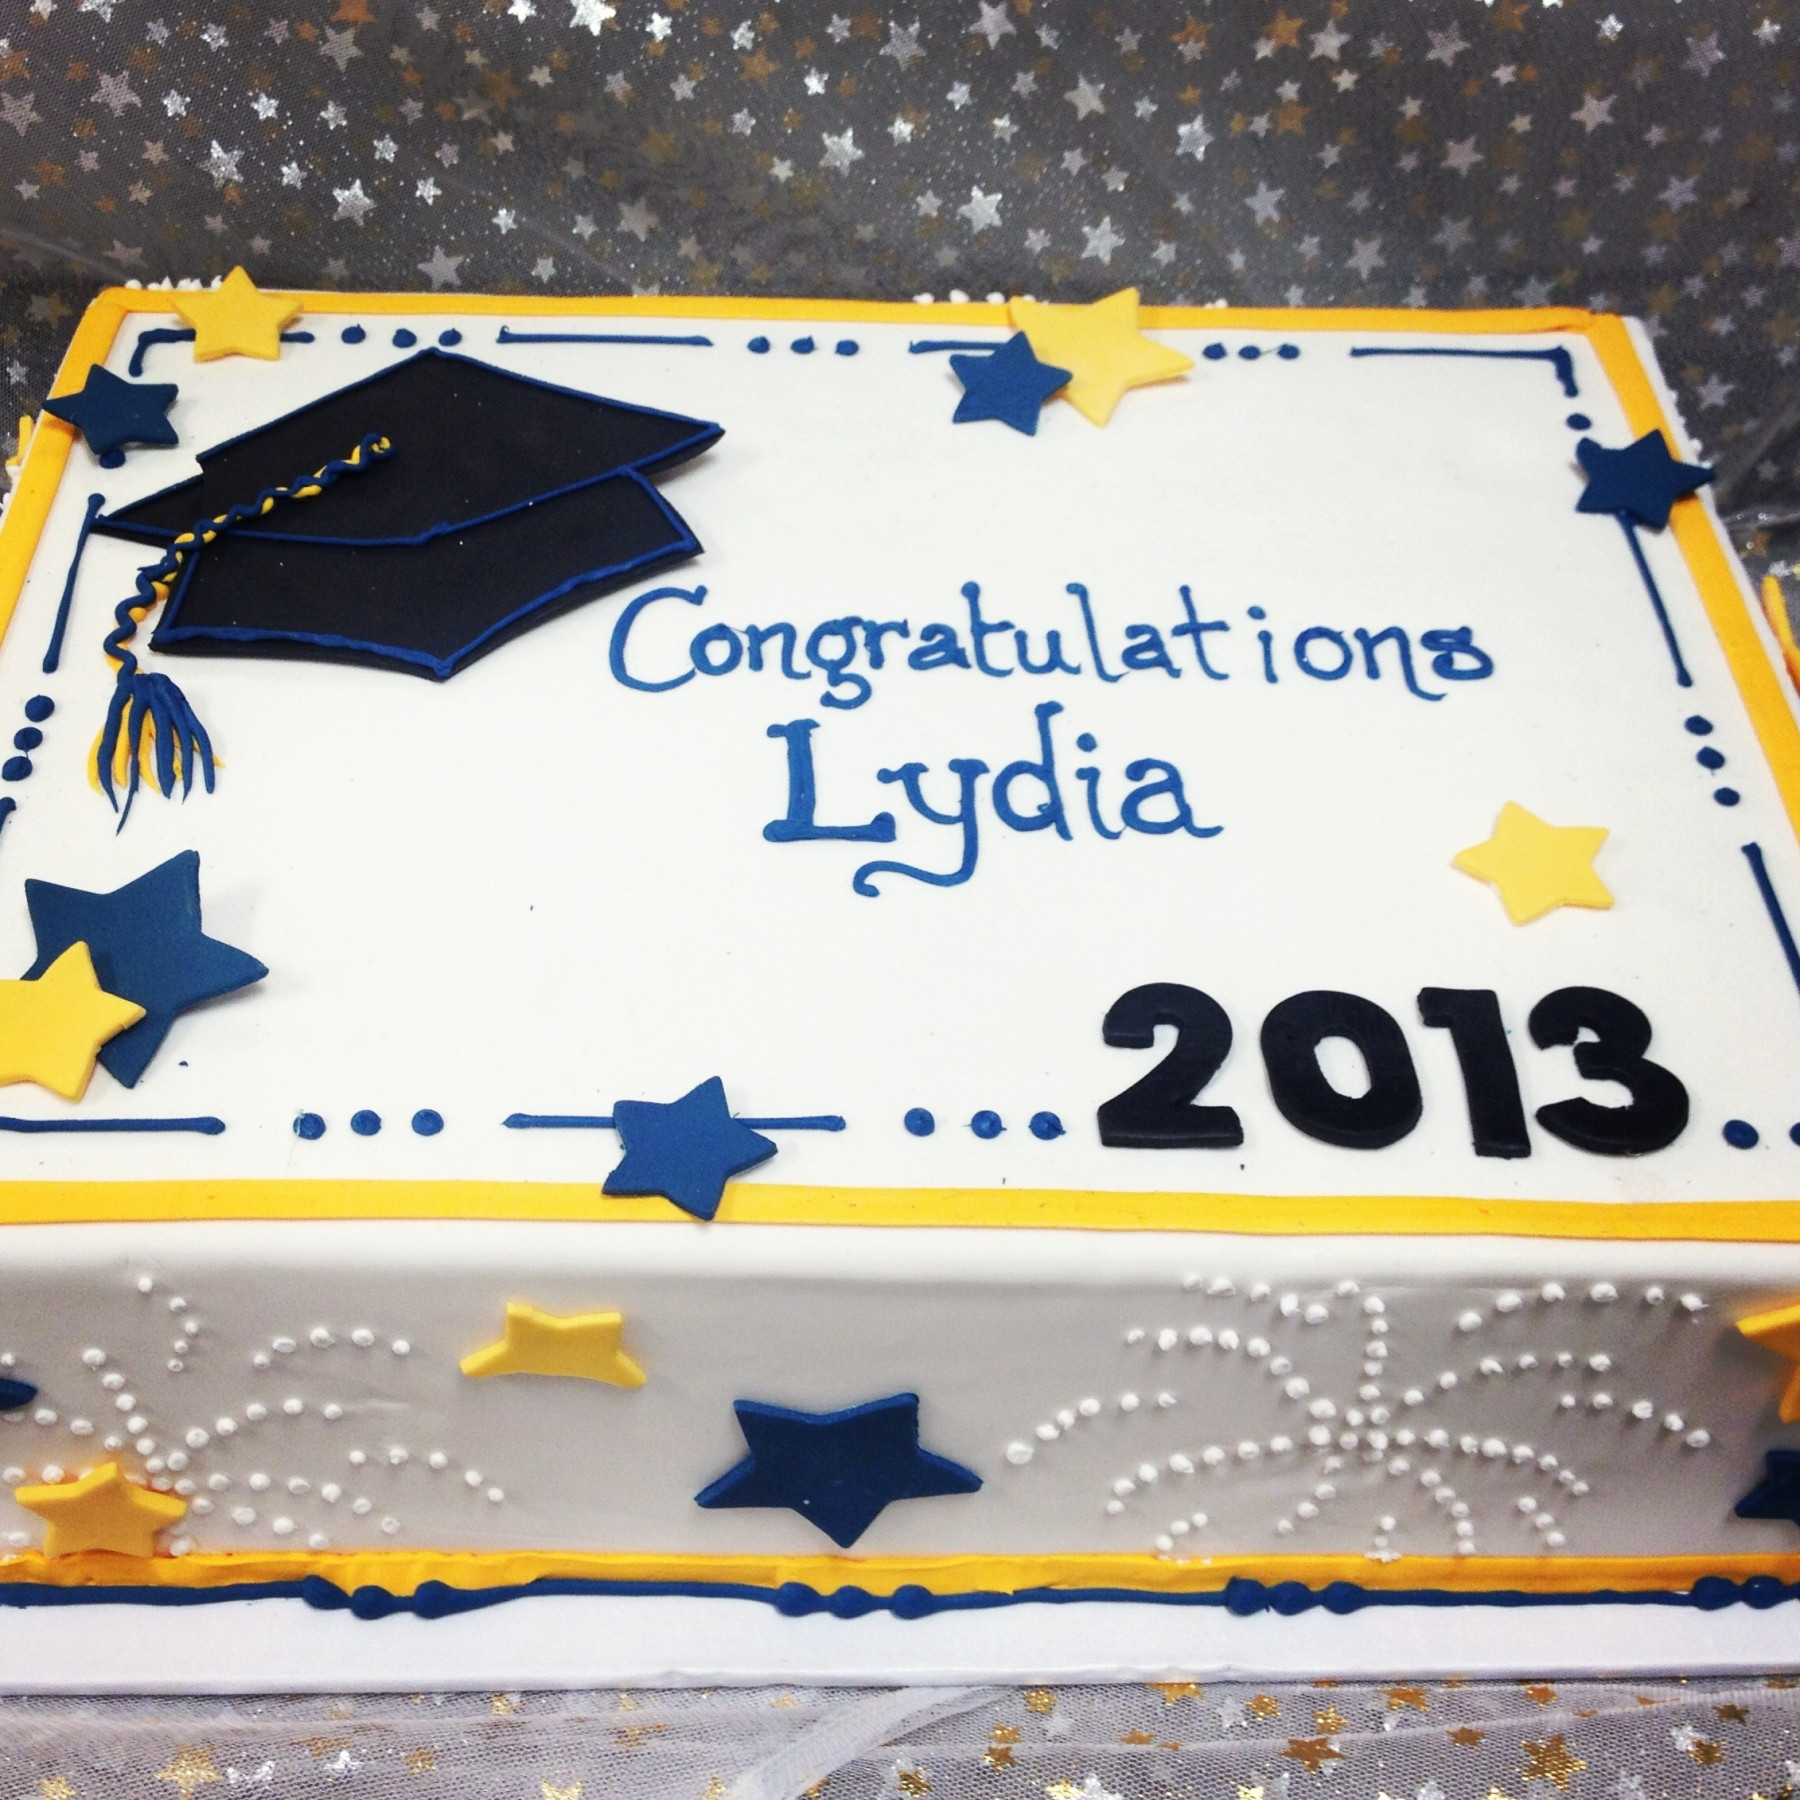 Graduation Sheet Cake the 20 Best Ideas for Graduation theme On Pinterest